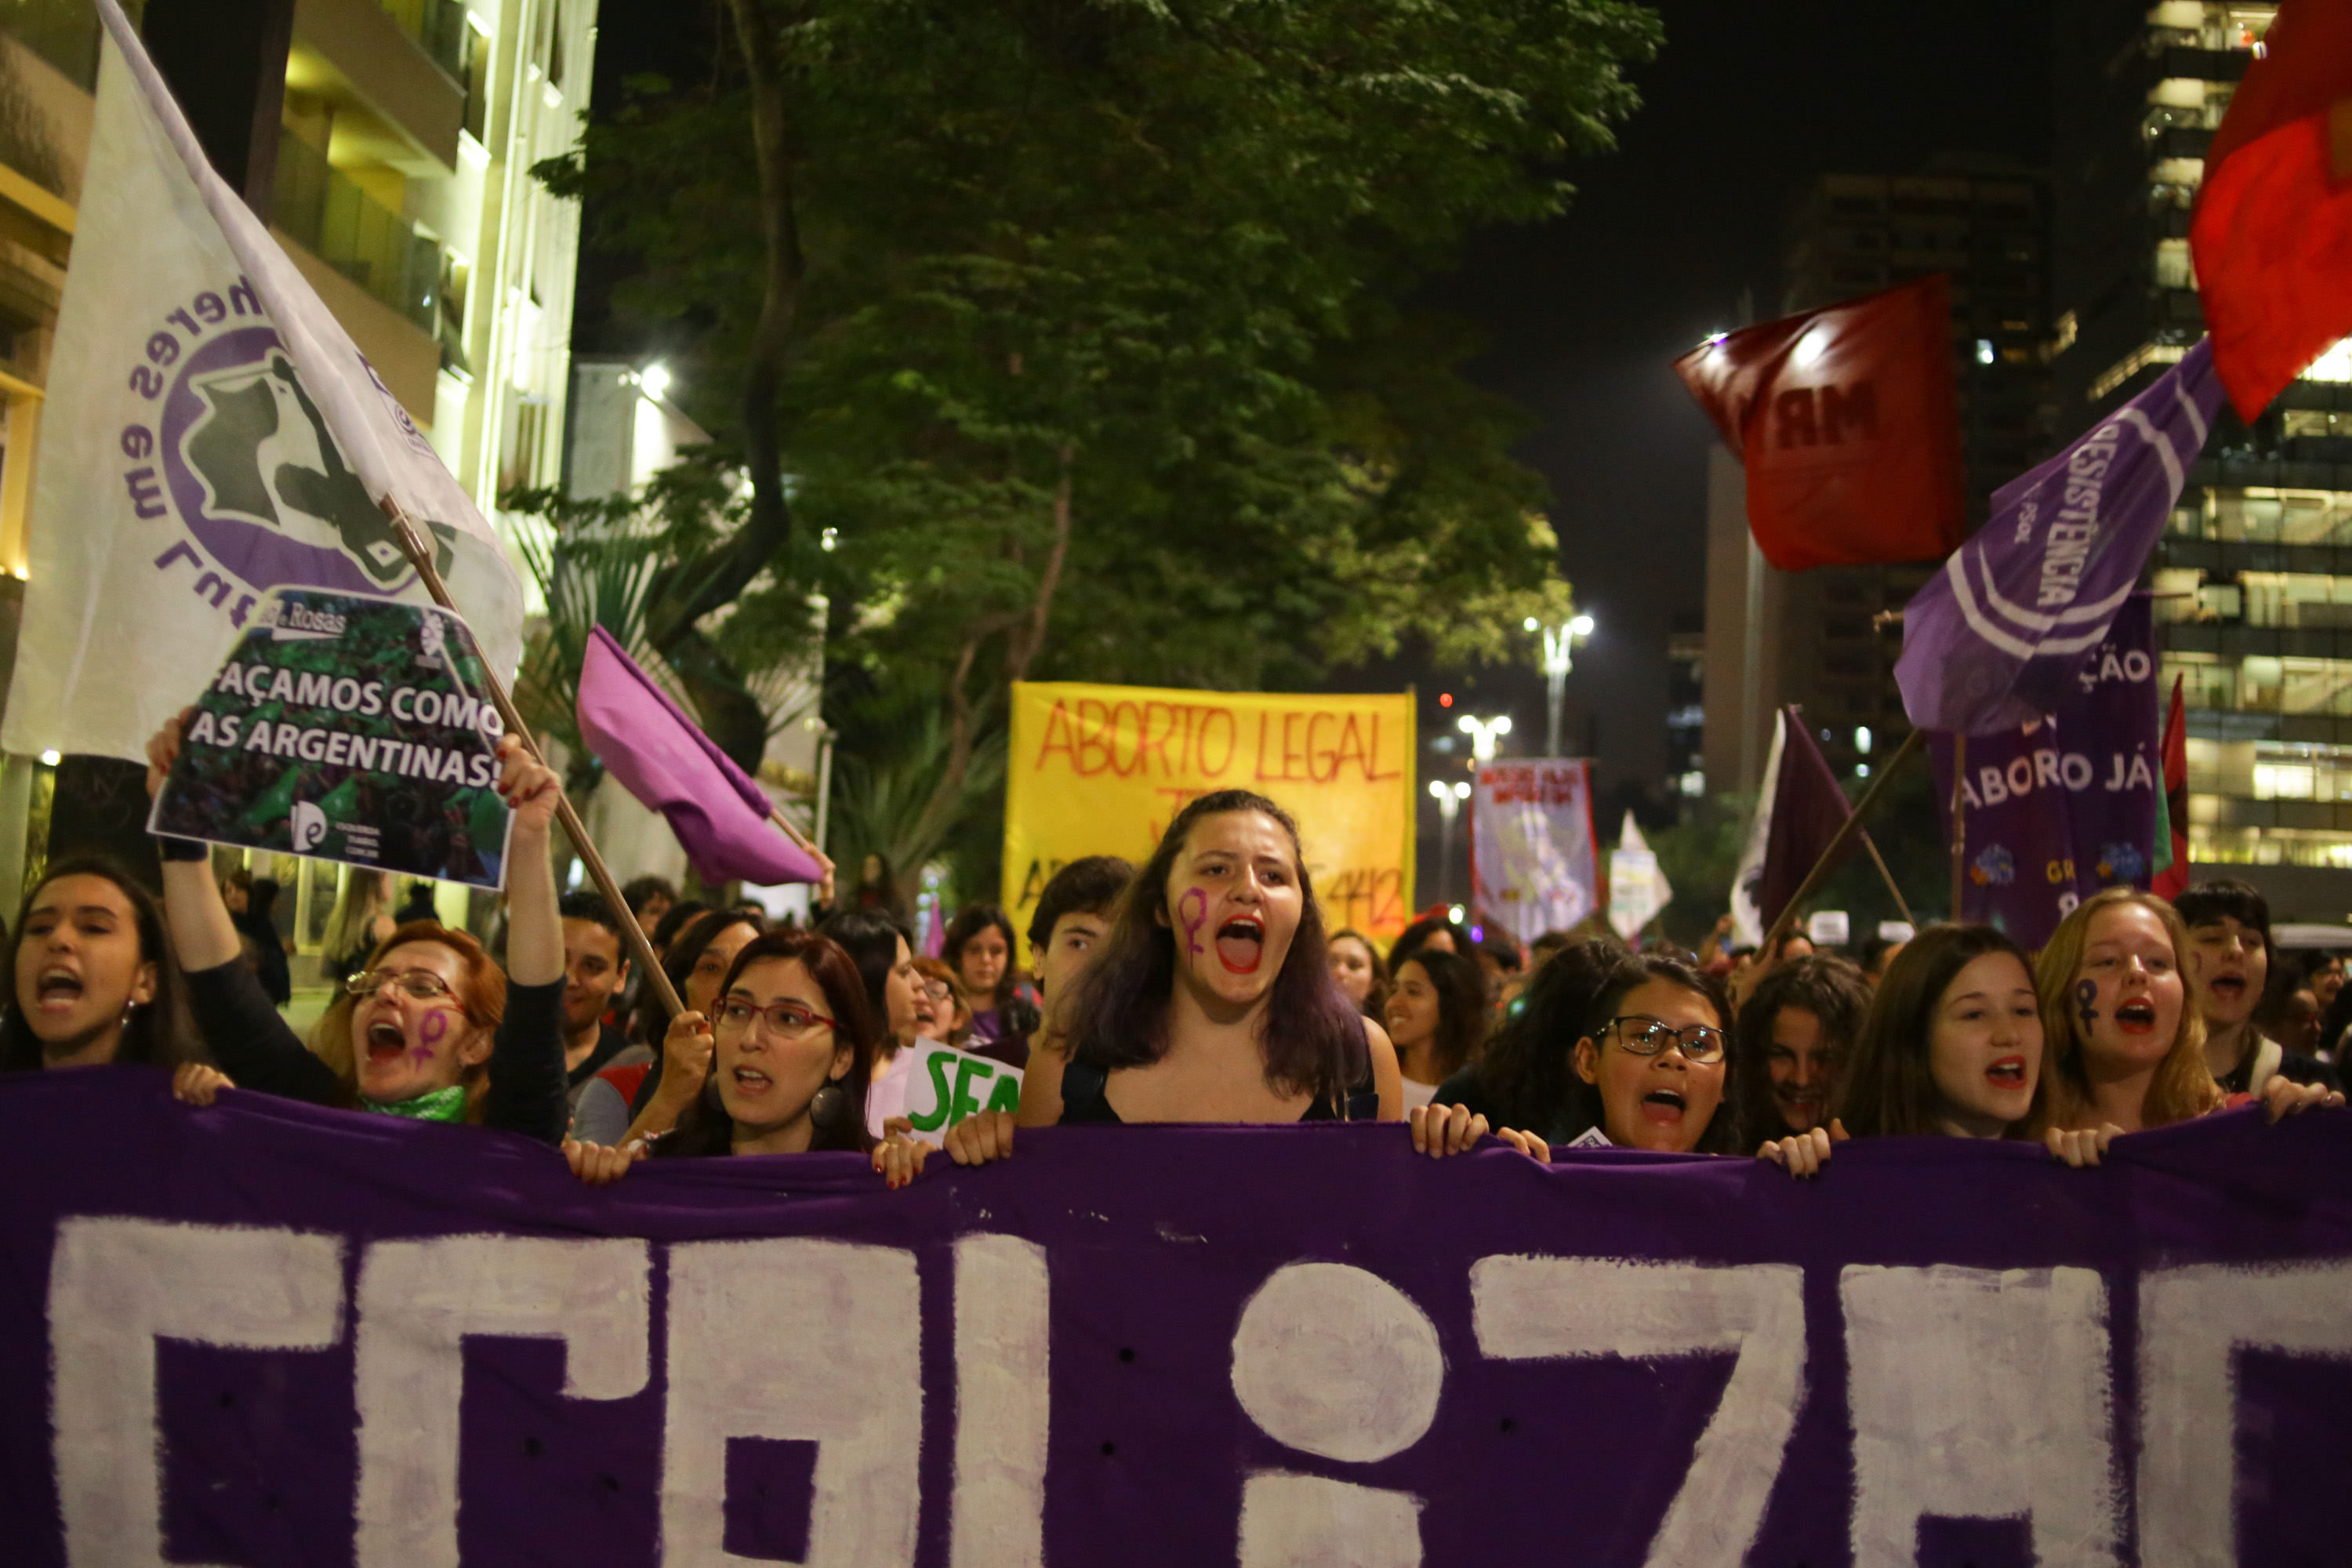 Activists demonstrate in Sao Paulo, Brazil, on July 19, 2018 in favor of abortion legalization.